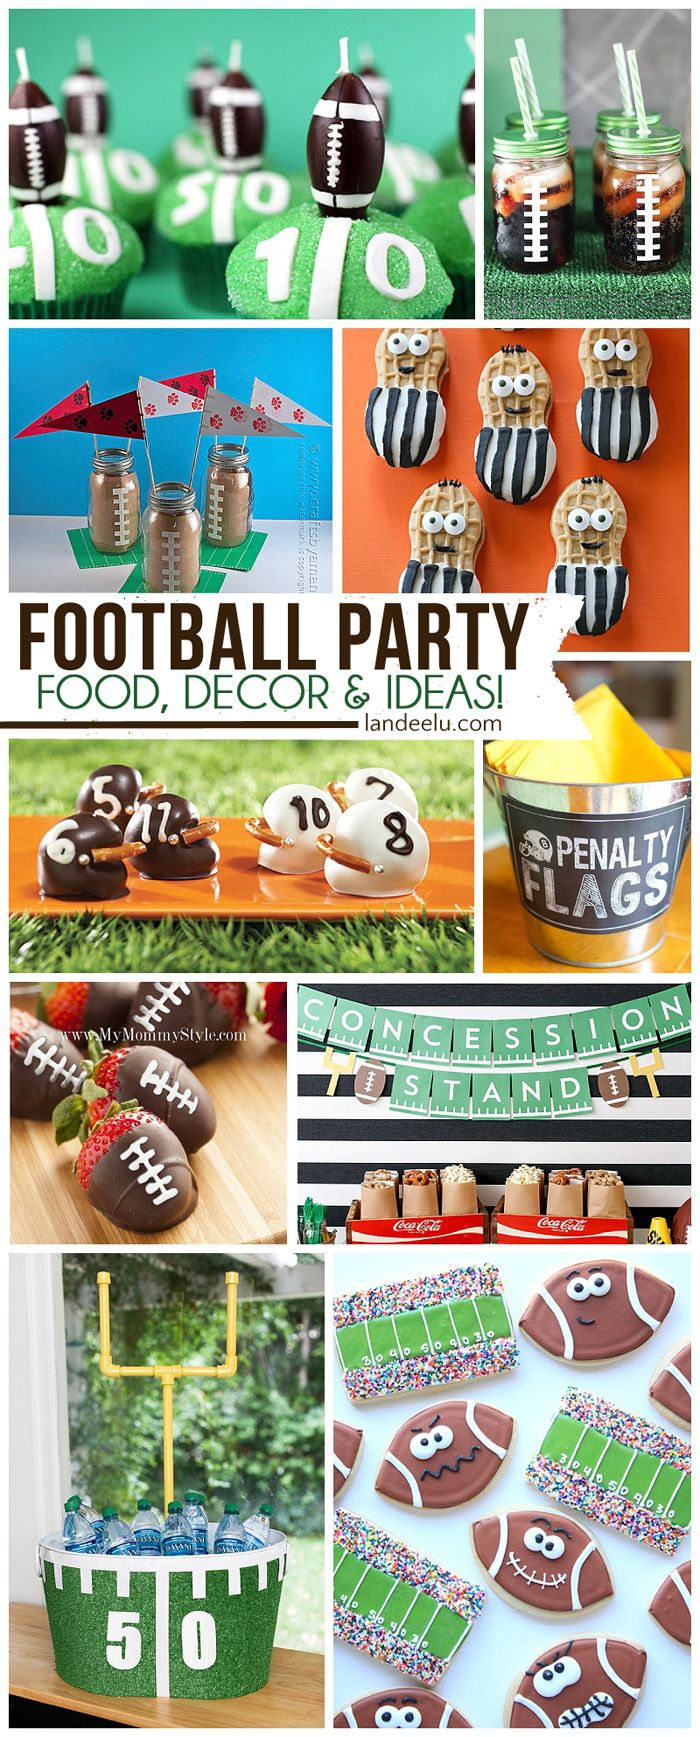 DIY Football Party Ideas Perfect for Team Parties, Birthdays and SUPER BOWL! - landeelu.com